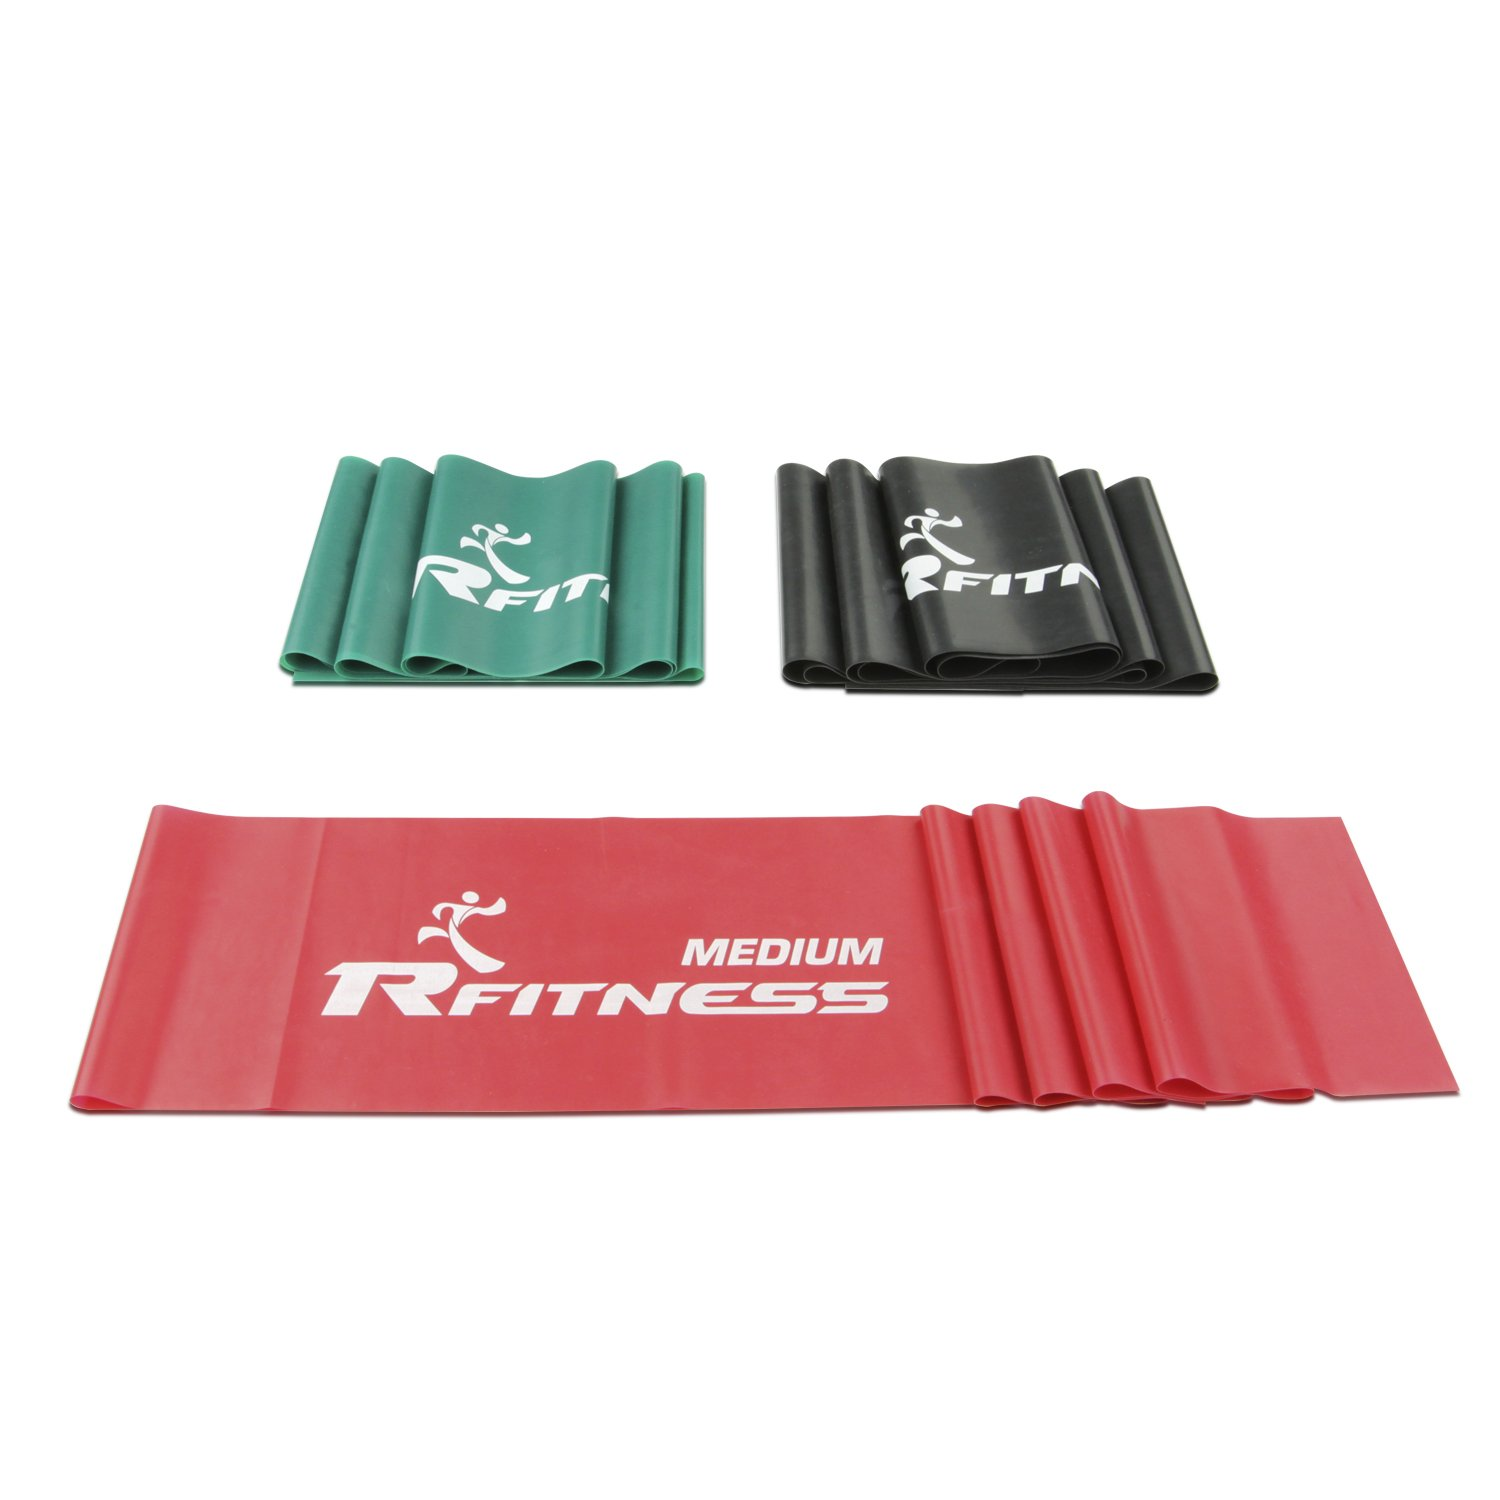 RF1502-3 Furinno Rfitness Professional Flat Stretch Exercise Band 3-PC Set